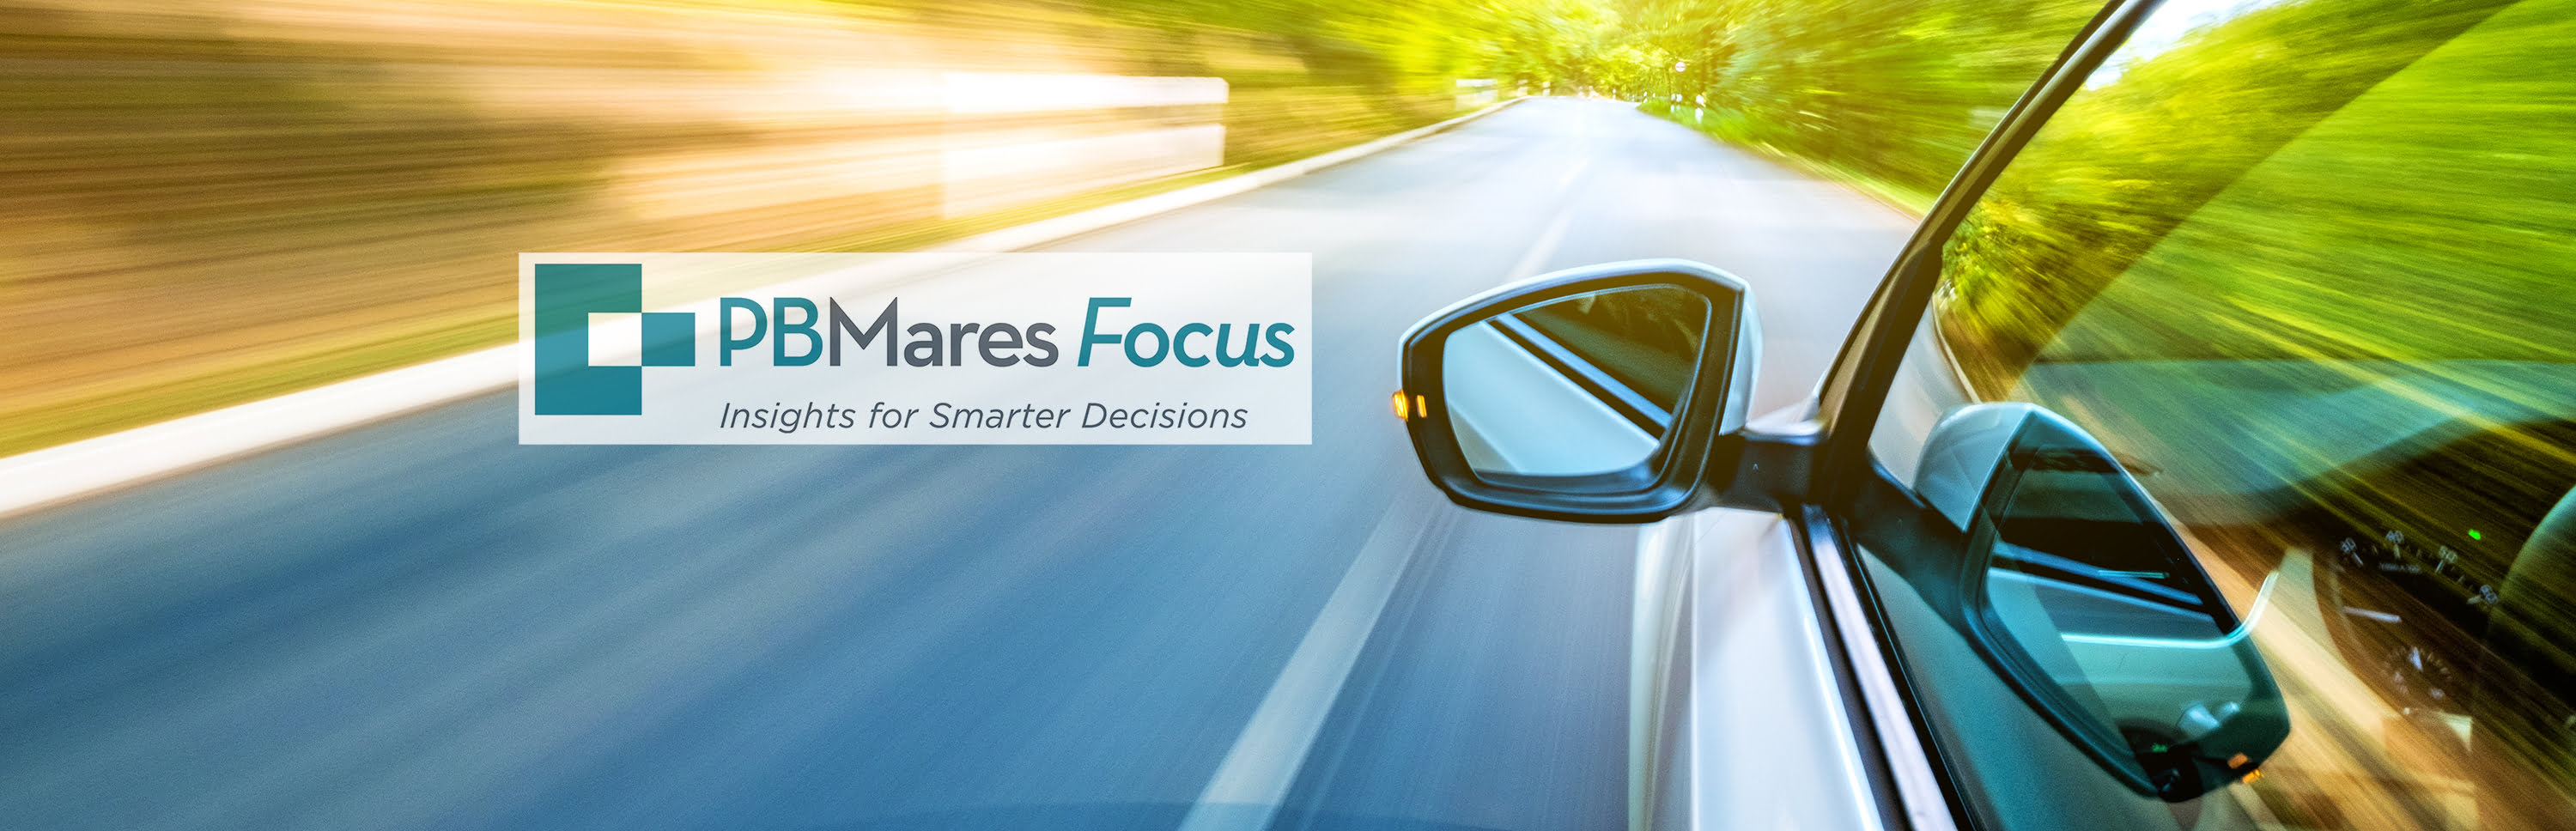 PBMares Focus - Fairfax CPA Firm